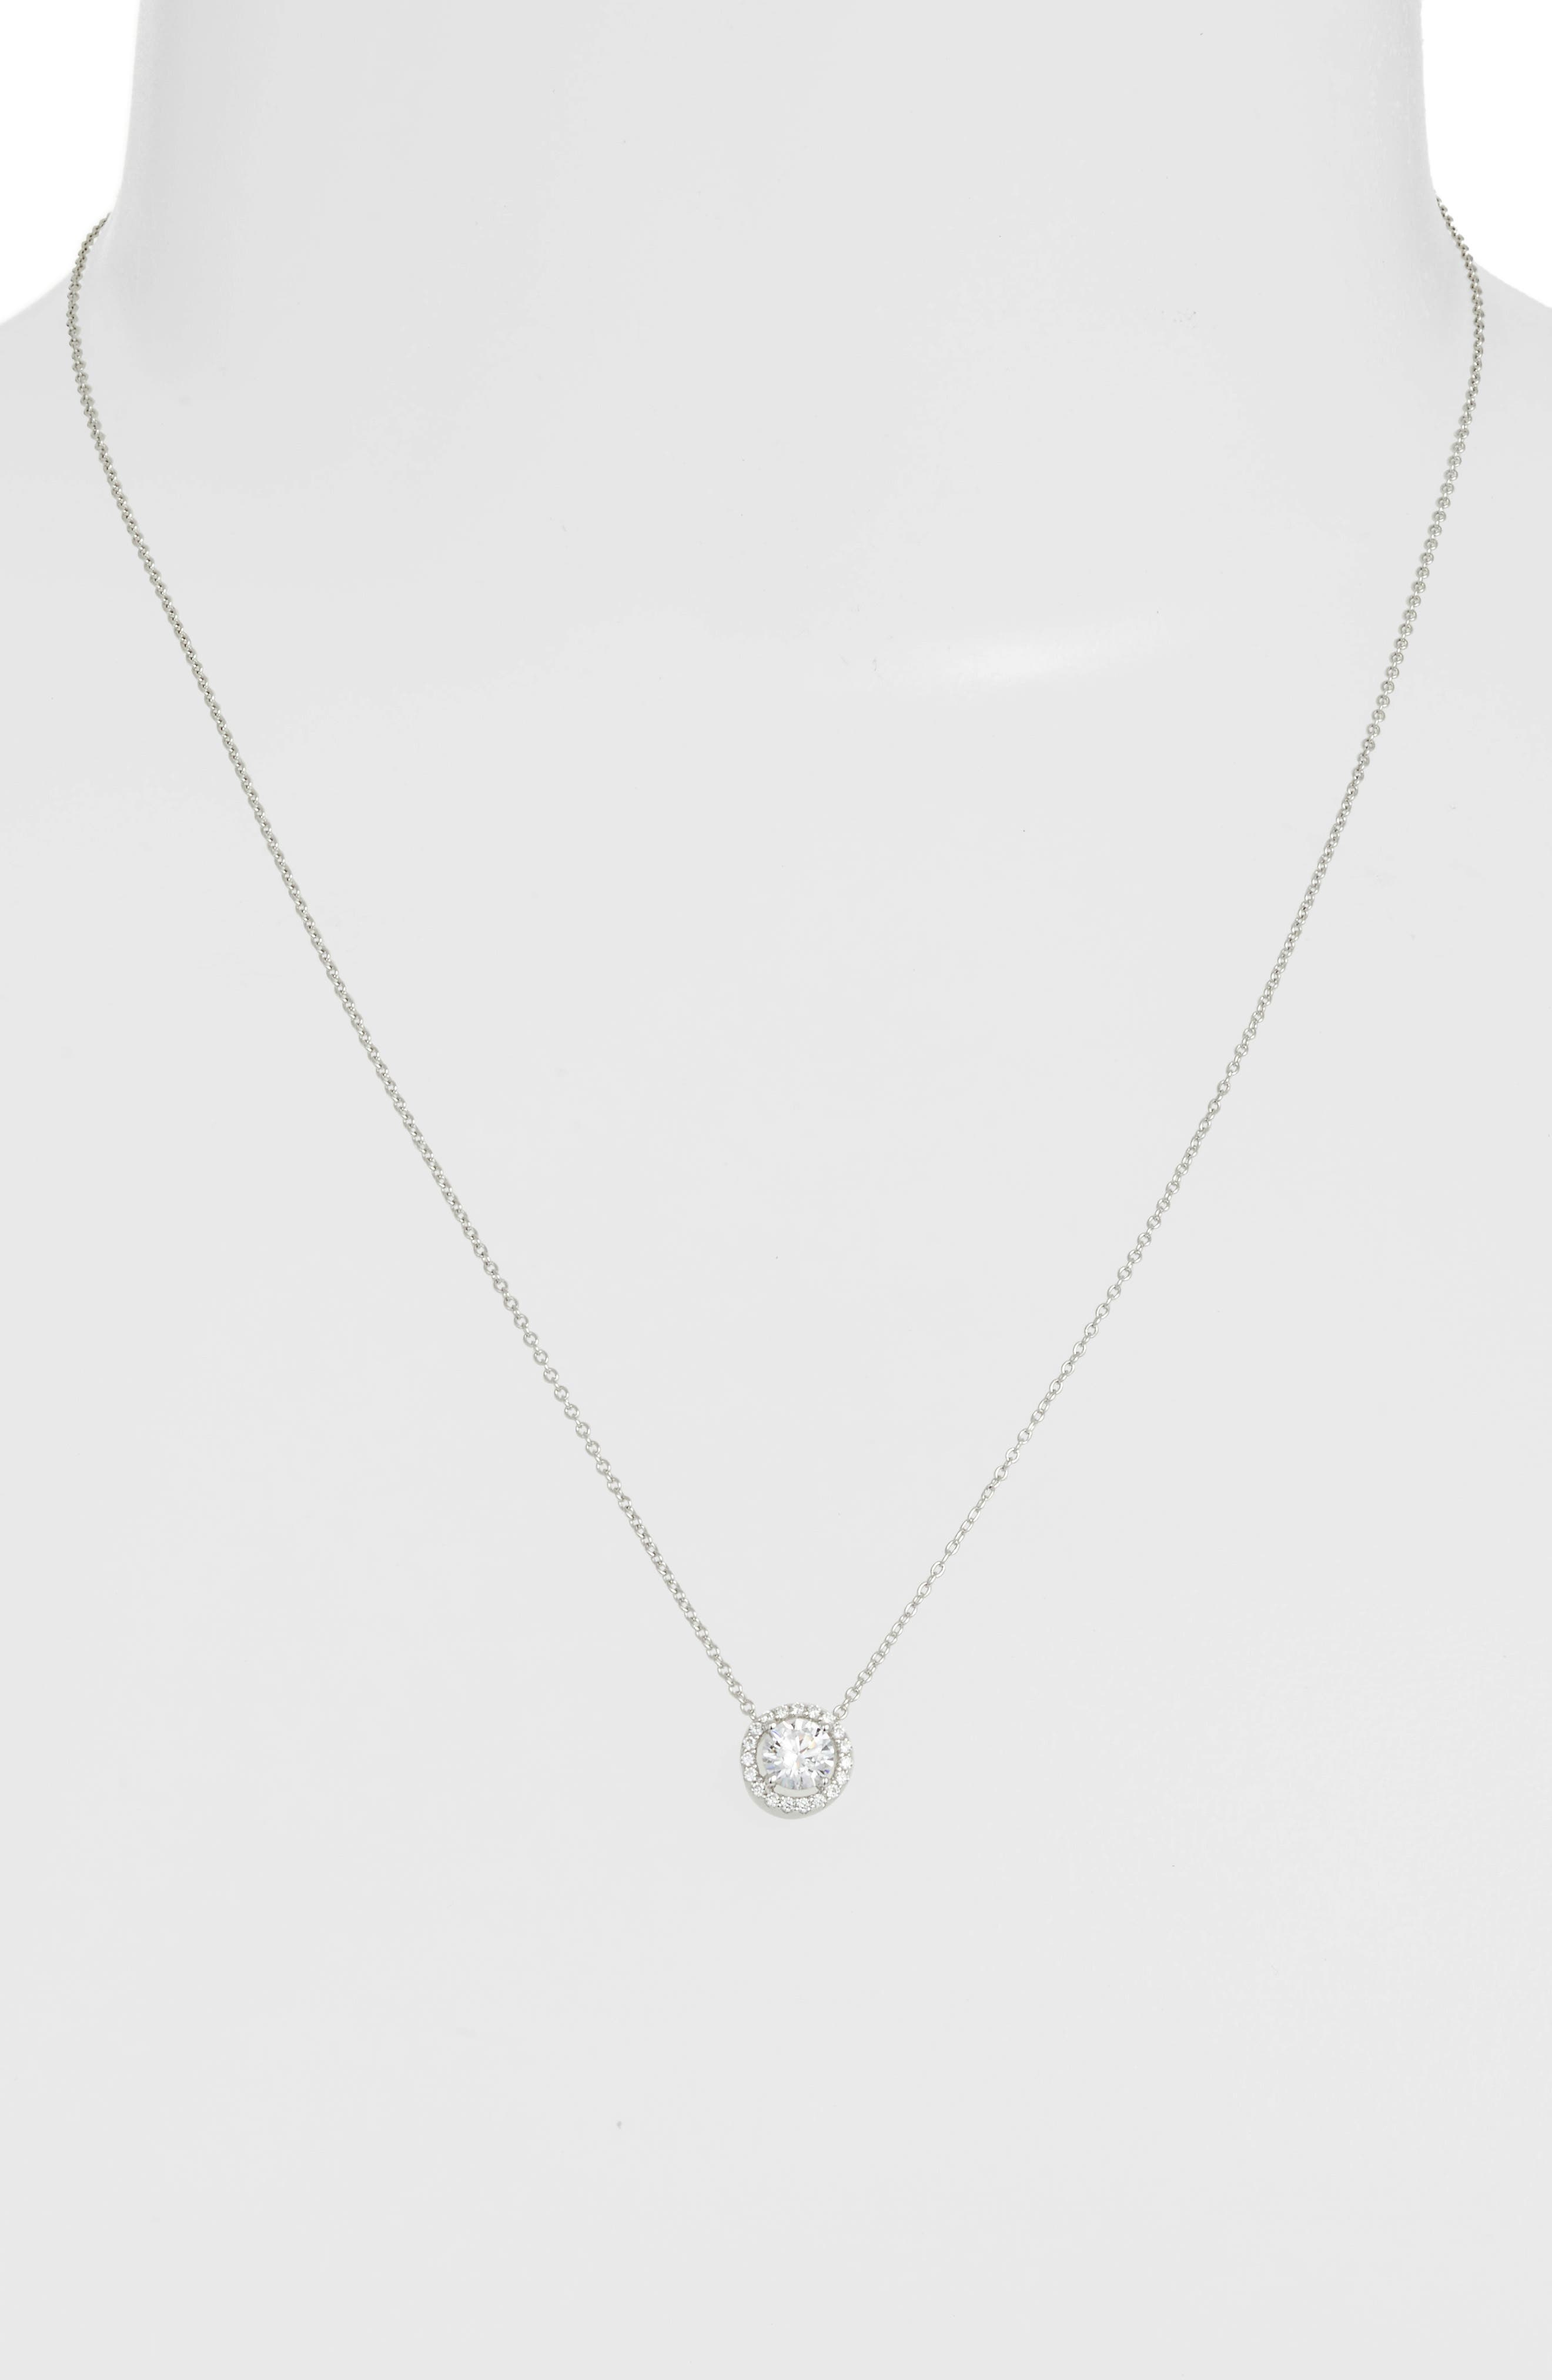 Round Halo Necklace,                             Alternate thumbnail 3, color,                             Silver/ Clear